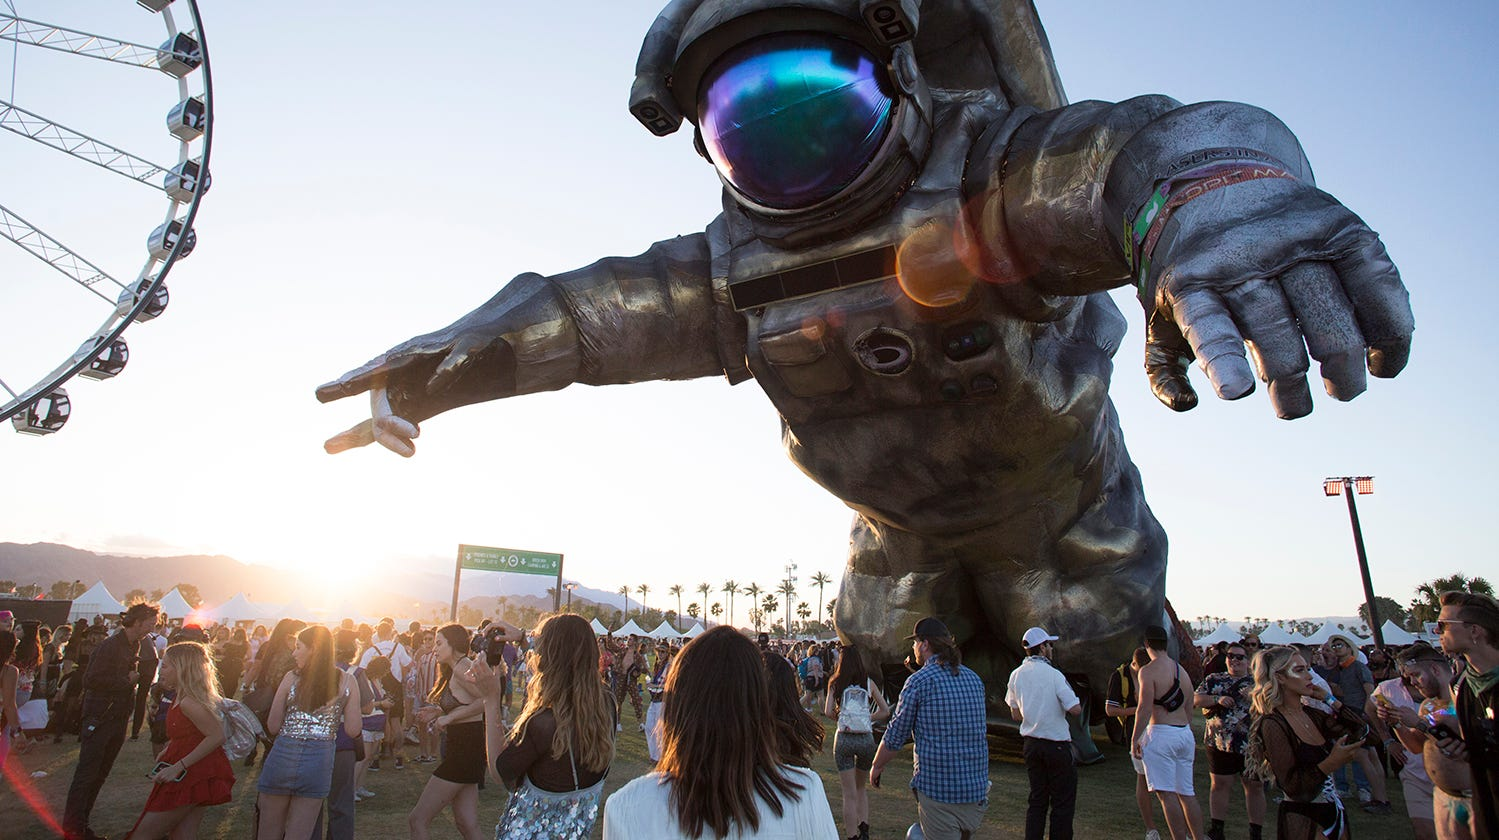 The Overview Effect art installation at the 2019 Coachella Valley Music and Arts Festival held at the Empire Polo Club in Indio, California on April 12, 2019.